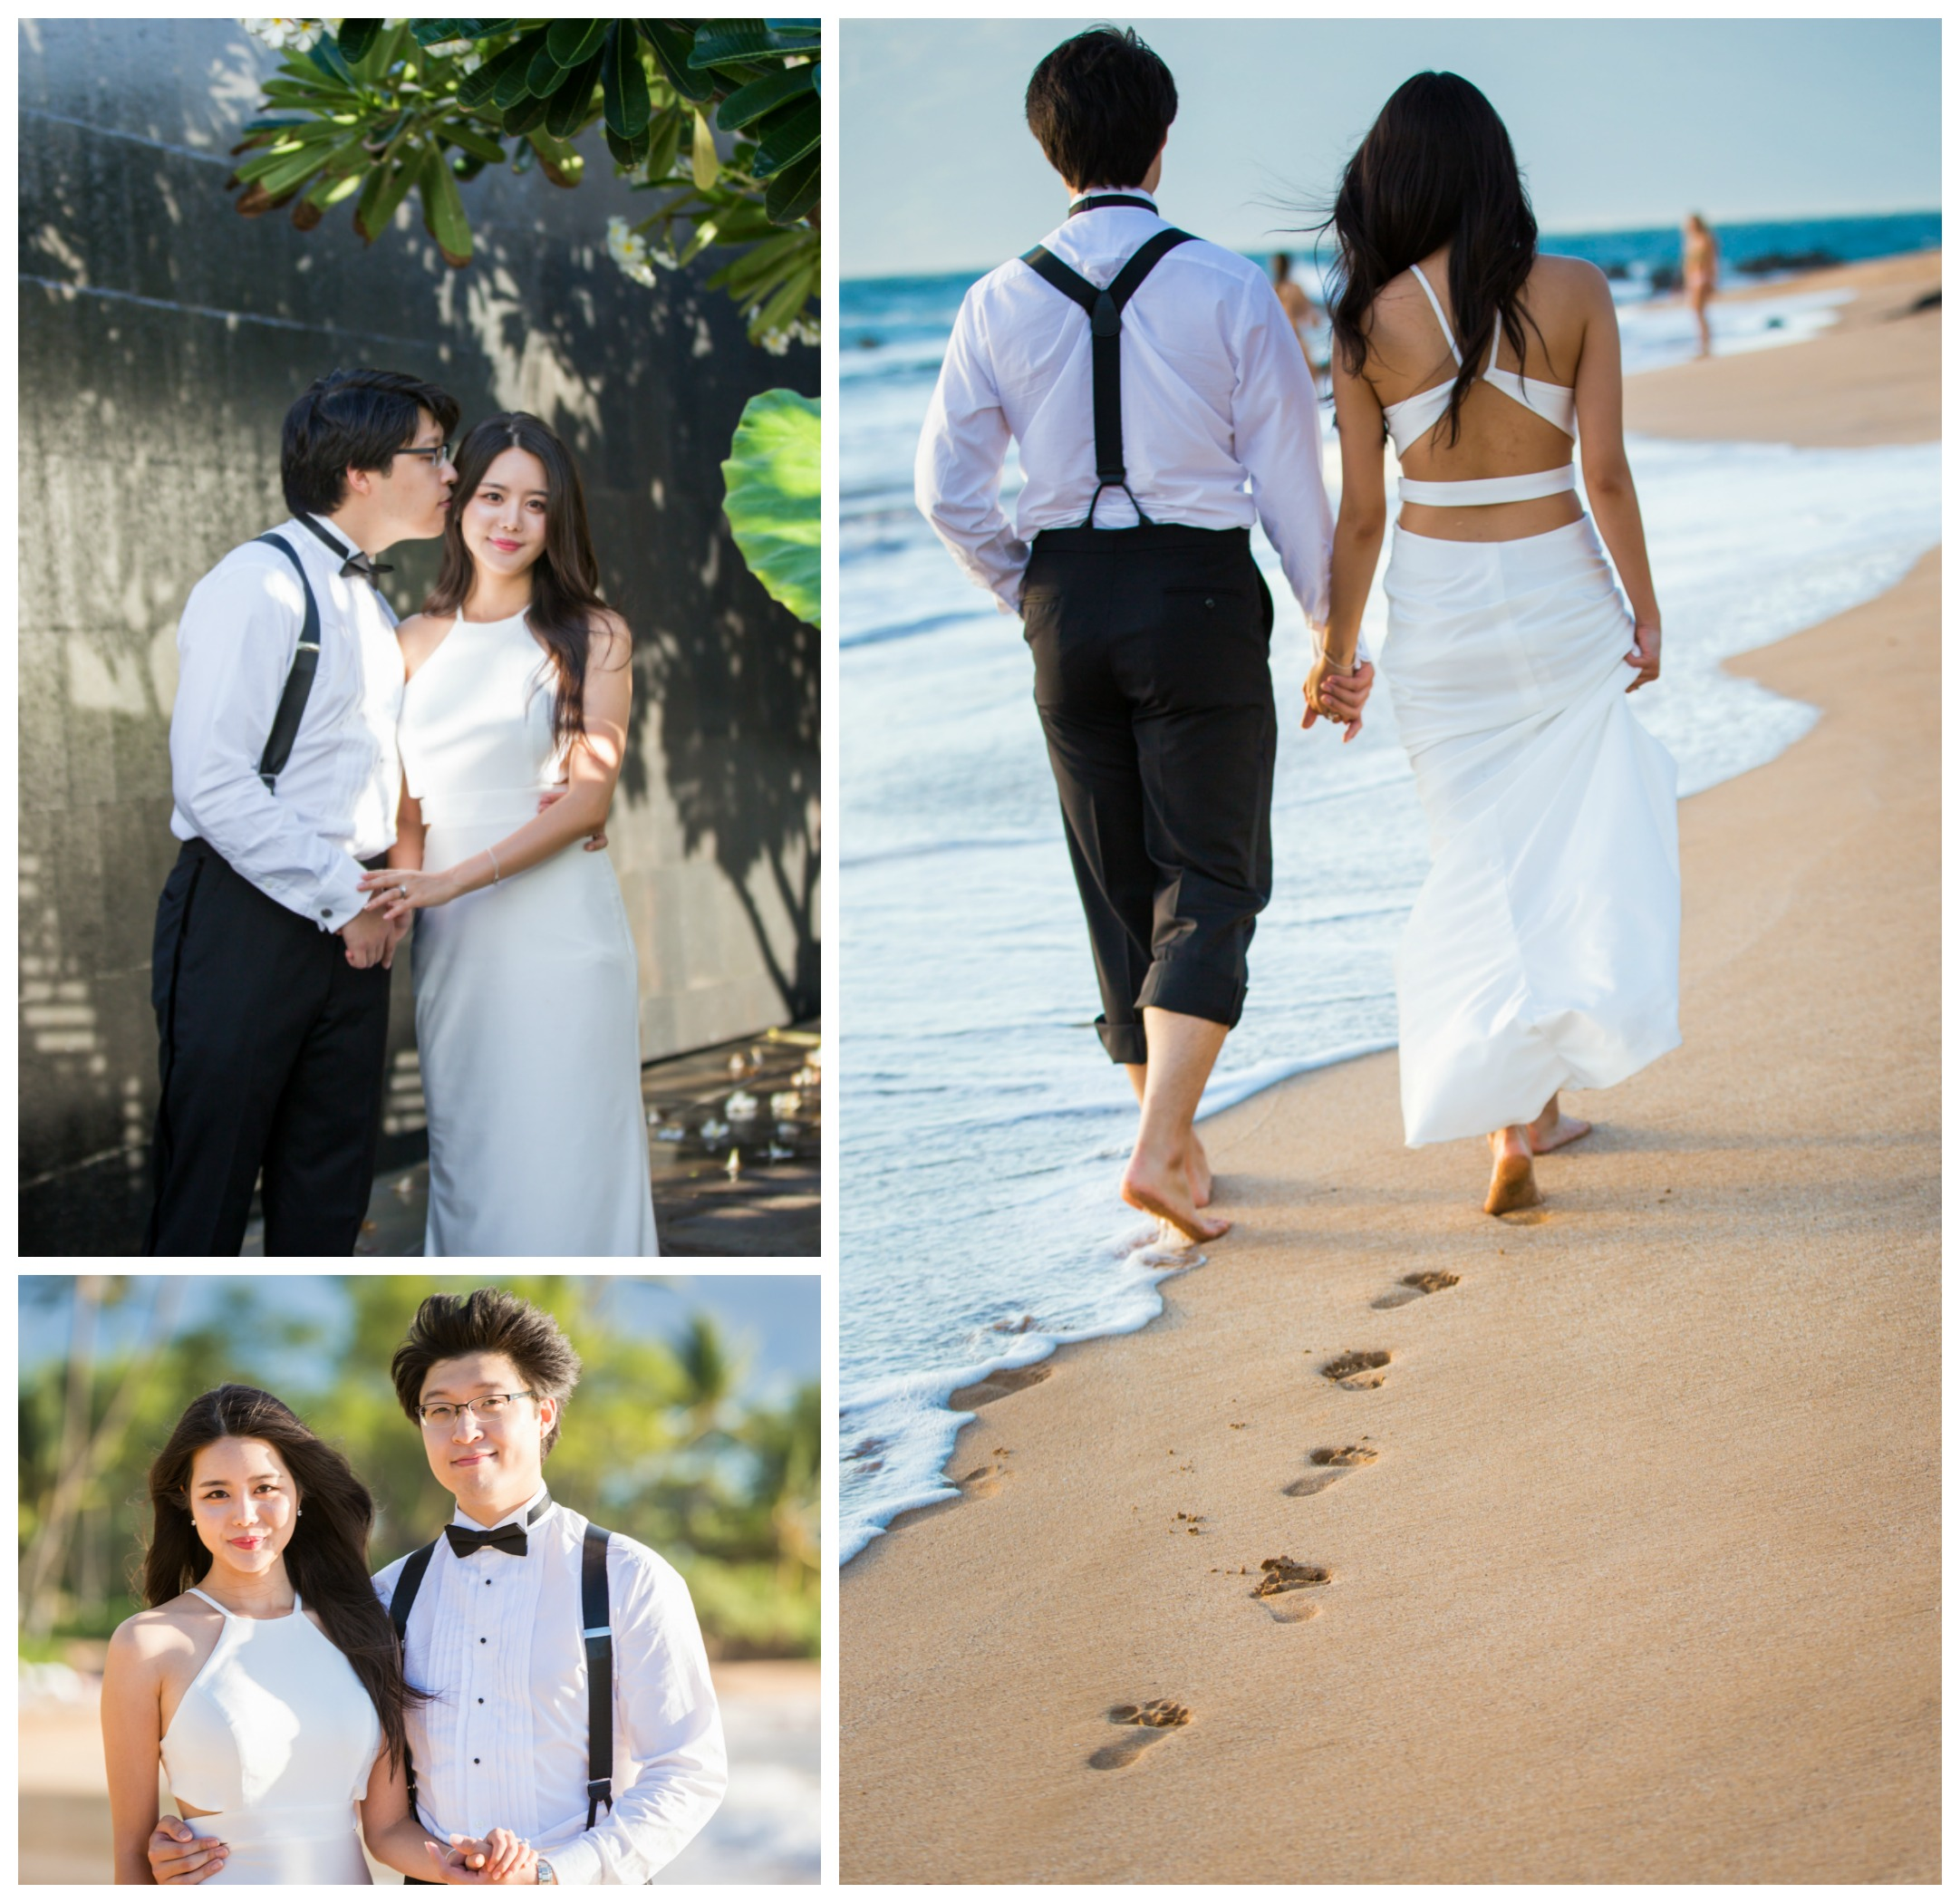 Pacific Dream Photography - Hawaii Photographer - Portrait Photographer - Engagement Photographer - Maui Photographer - Honeymoon Photographer Maui